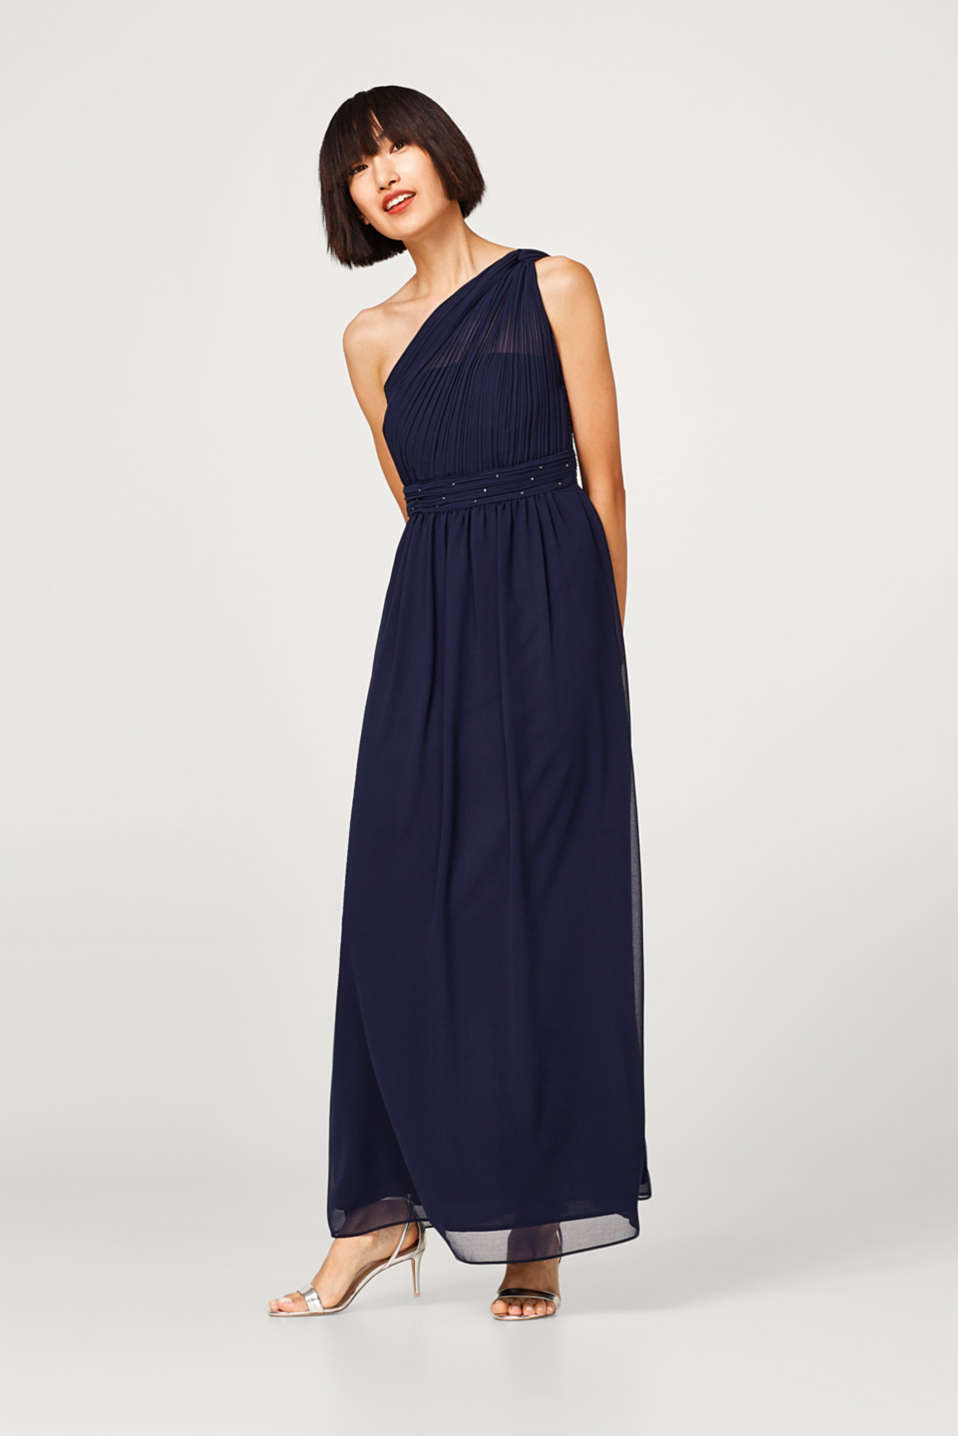 Esprit - One shoulder dress in chiffon + rhinestones